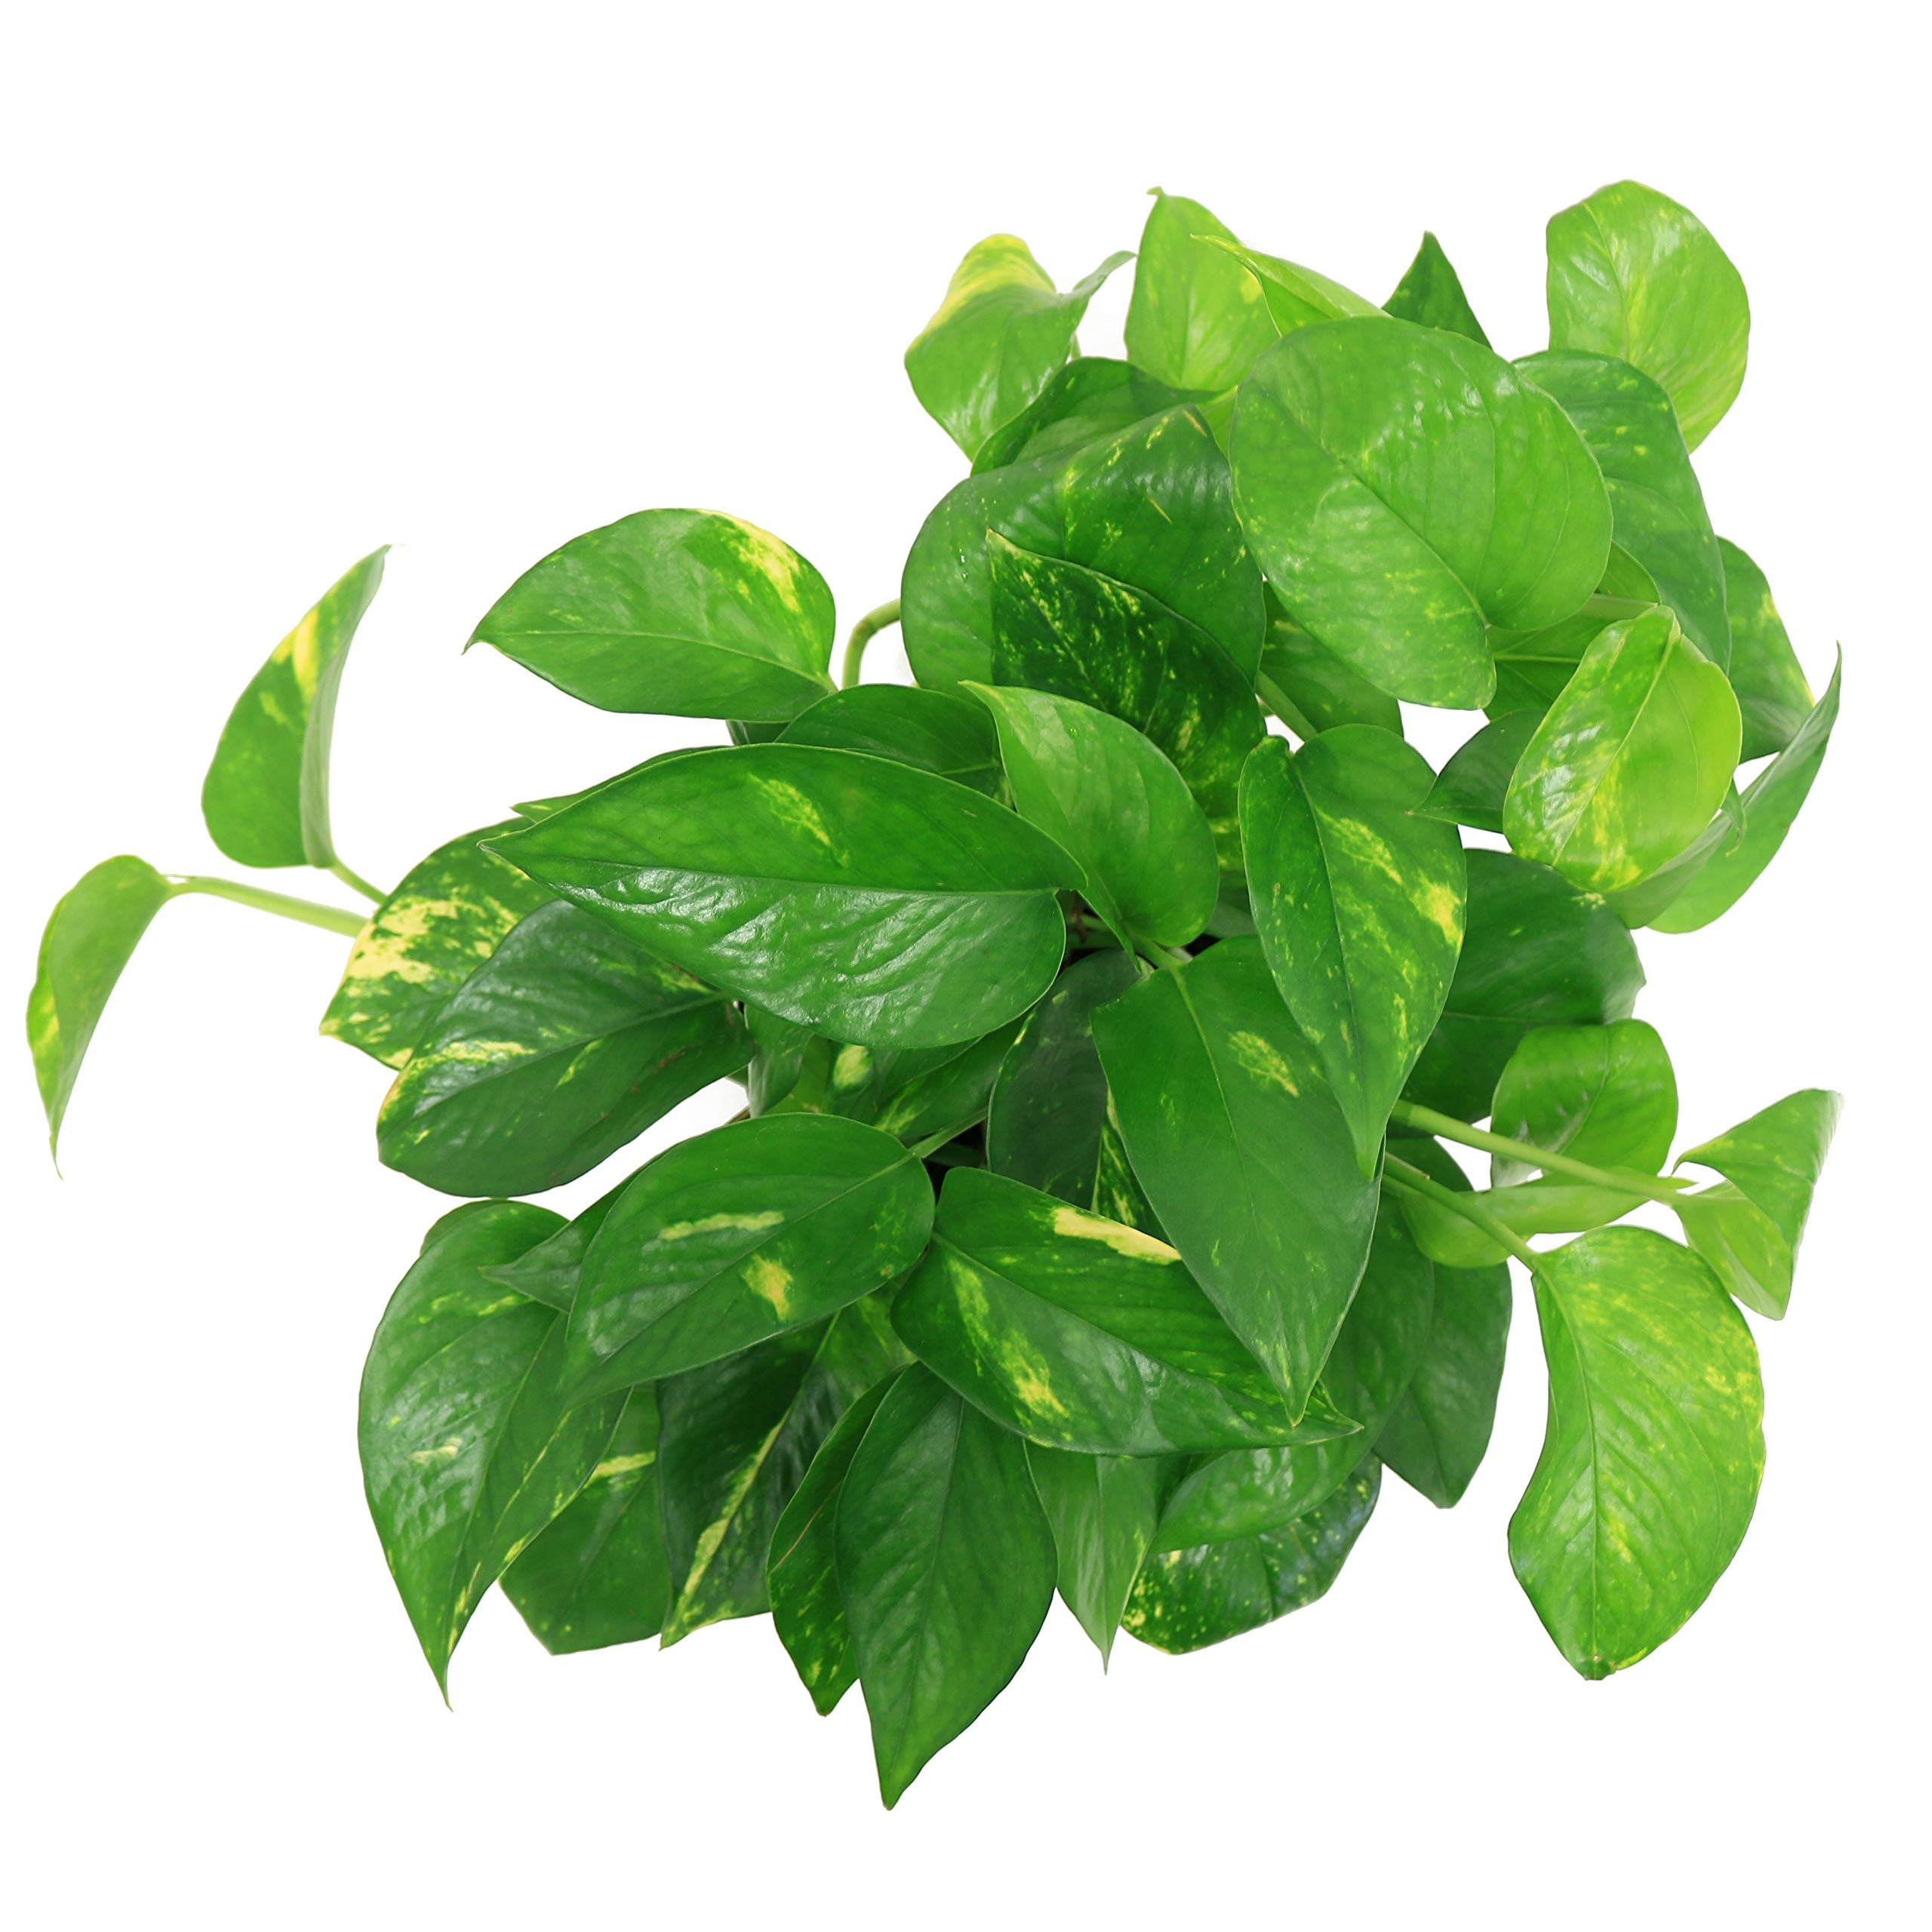 Costa Farms Golden Pothos Devil's Ivy Live Indoor Plant, 6-Inch, Ships in Grower's Pot by Costa Farms (Image #2)